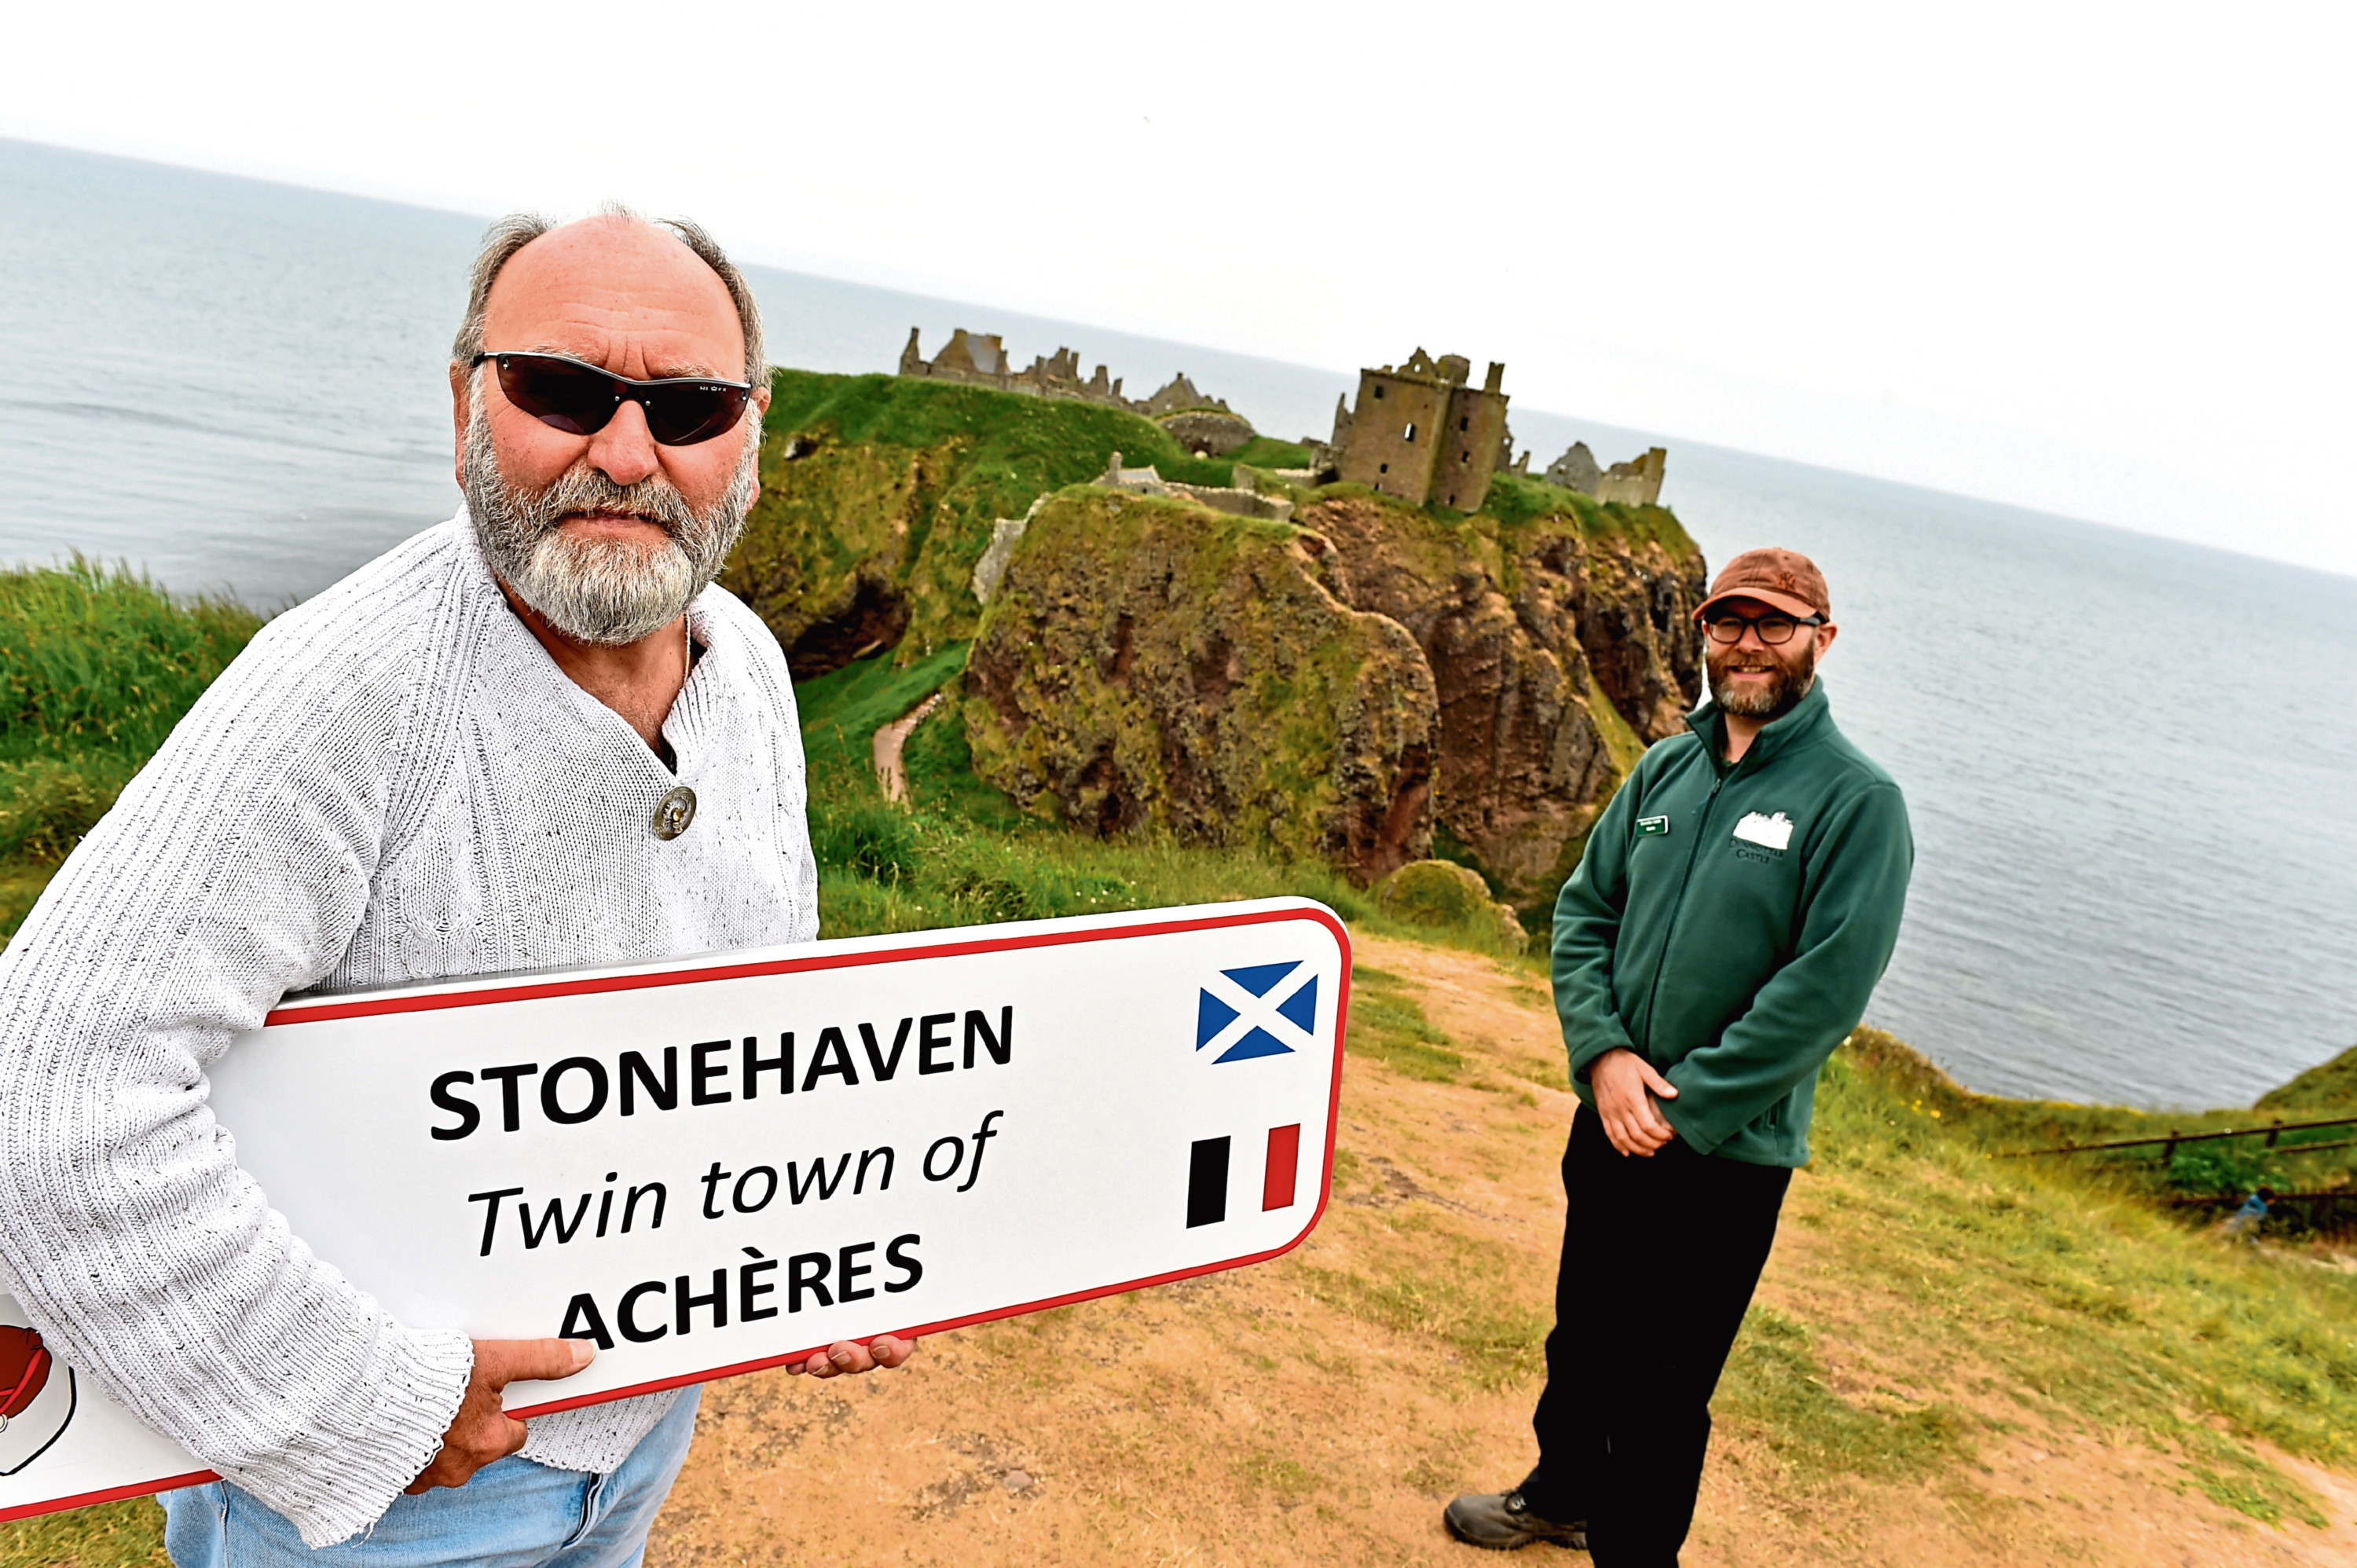 Phil Mills-Bishop, coordinator for Stonehaven Twinning Group with the Acheres sign.